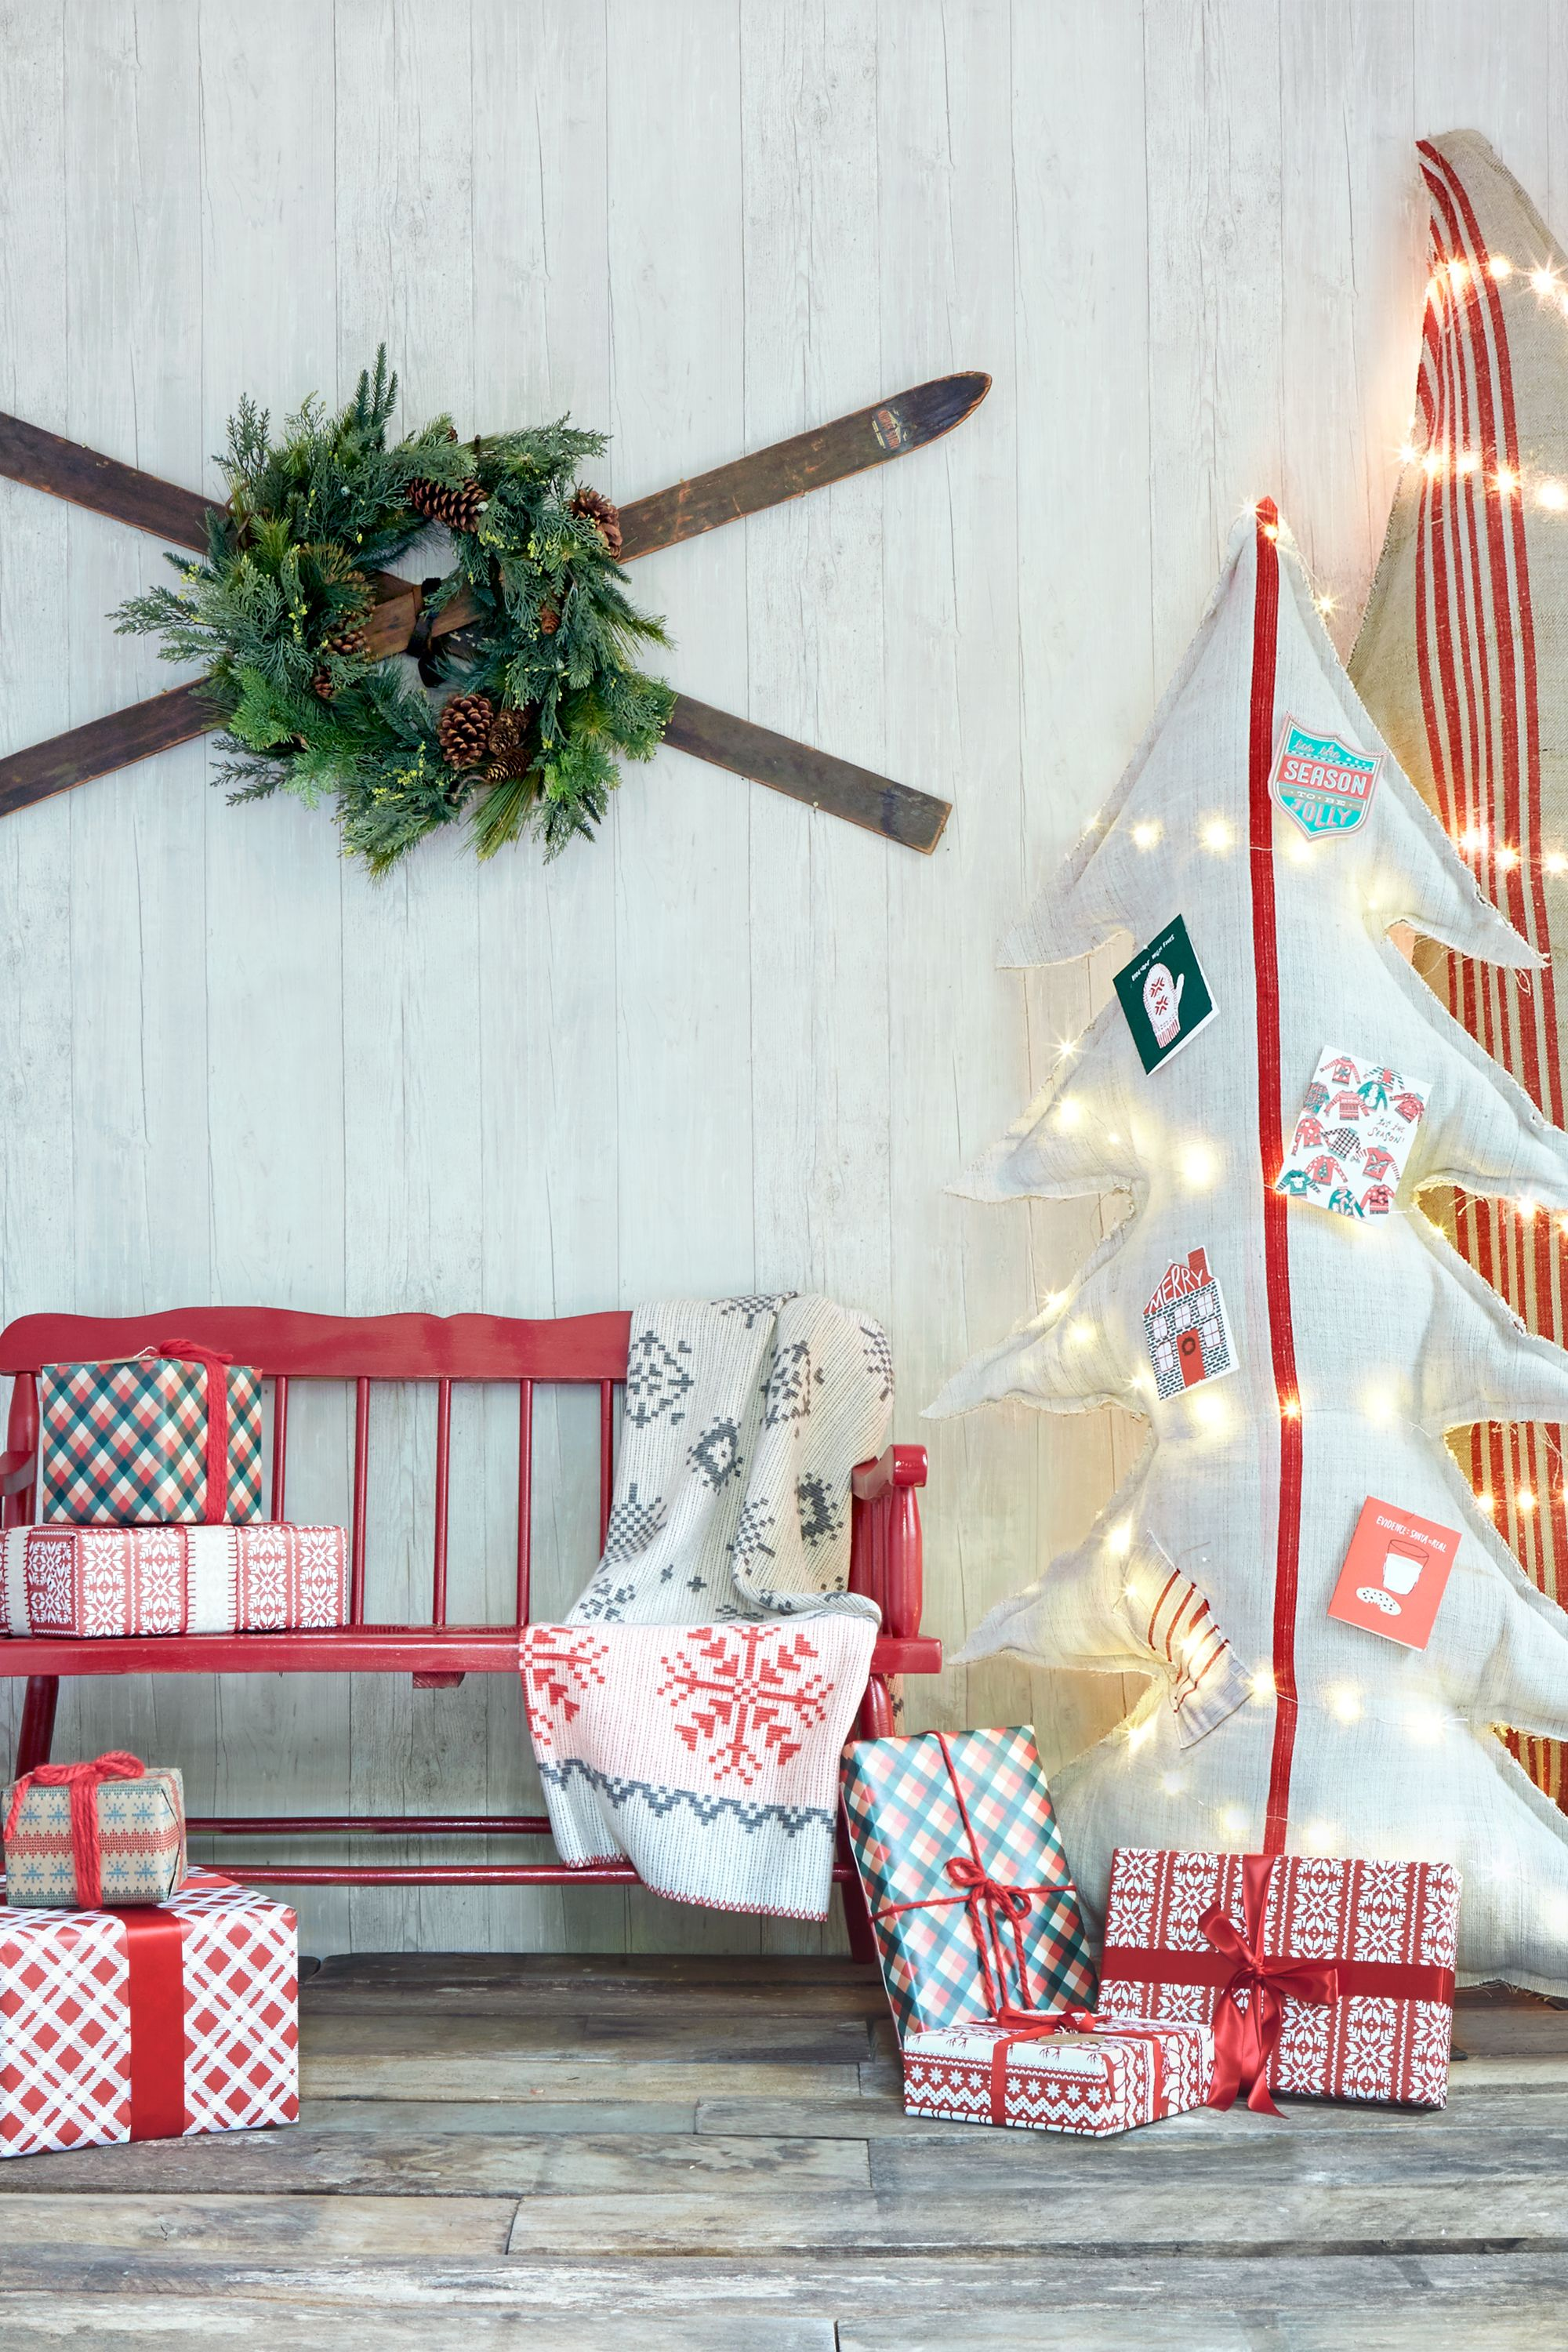 34 outdoor christmas decorations ideas for outside christmas porch 34 outdoor christmas decorations ideas for outside christmas porch decor solutioingenieria Choice Image